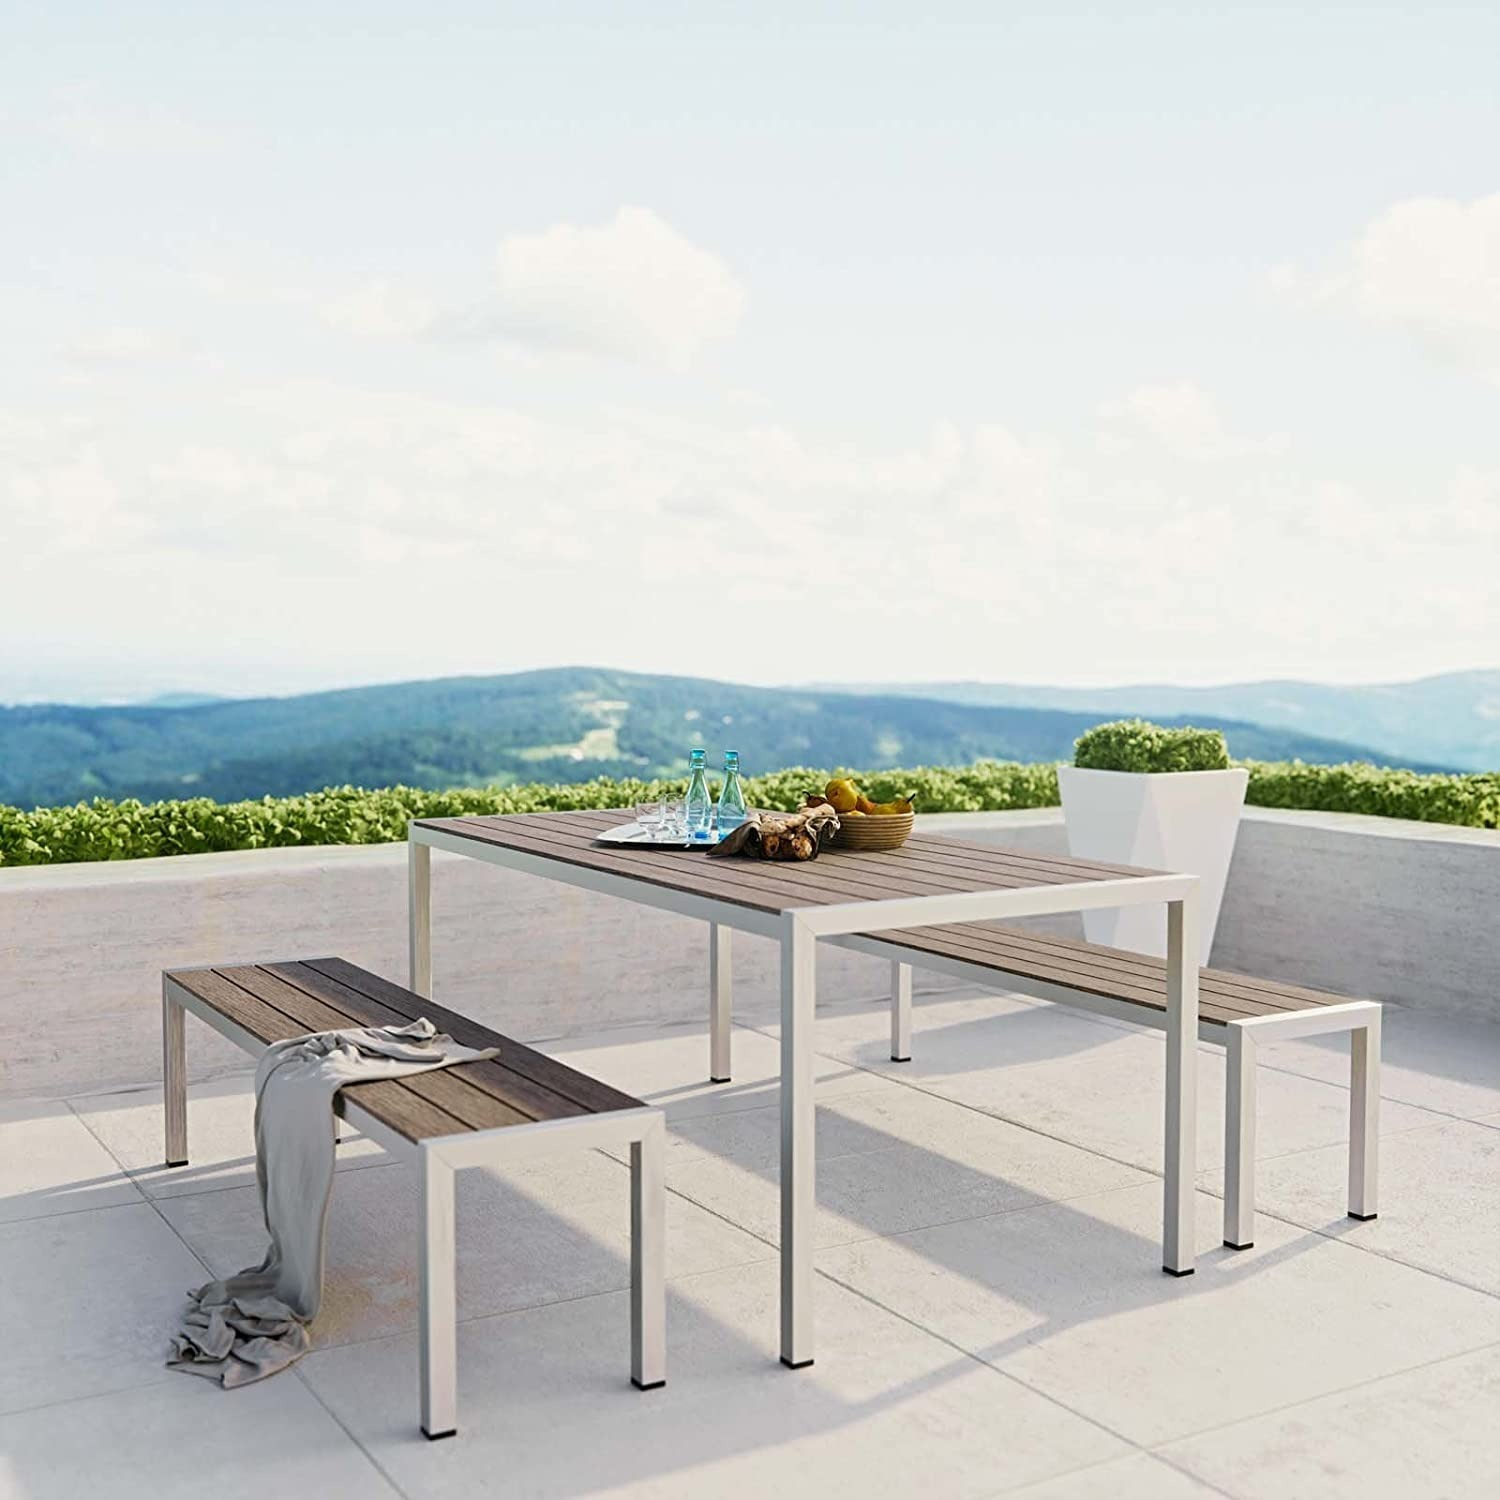 3-Piece Outdoor Dining Set In Aluminum Frame - image-3